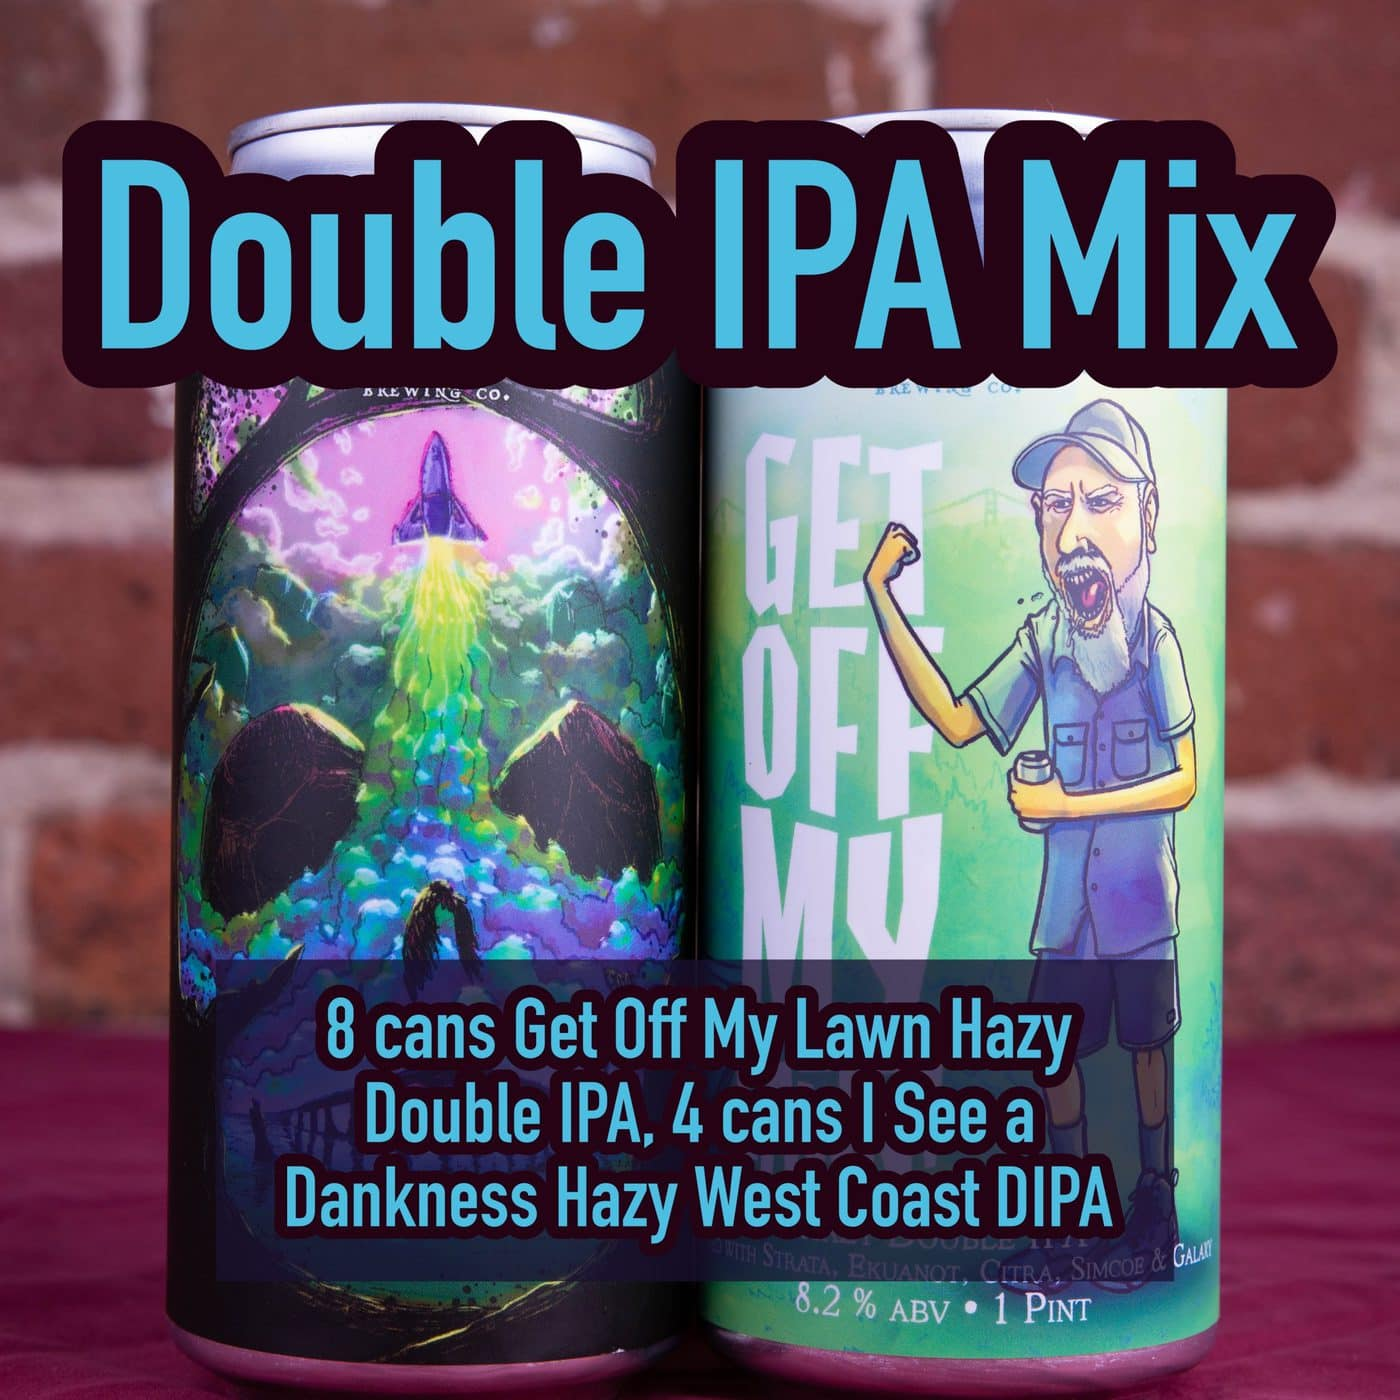 12 CANS I LOVE DIPA MIX – 8 Get Off My Lawn Hazy DIPA And 4 I See A Dankness DIPA – Sante Adairius Collab  – Shipping Out Tuesday 4/20 For Next Day Delivery*